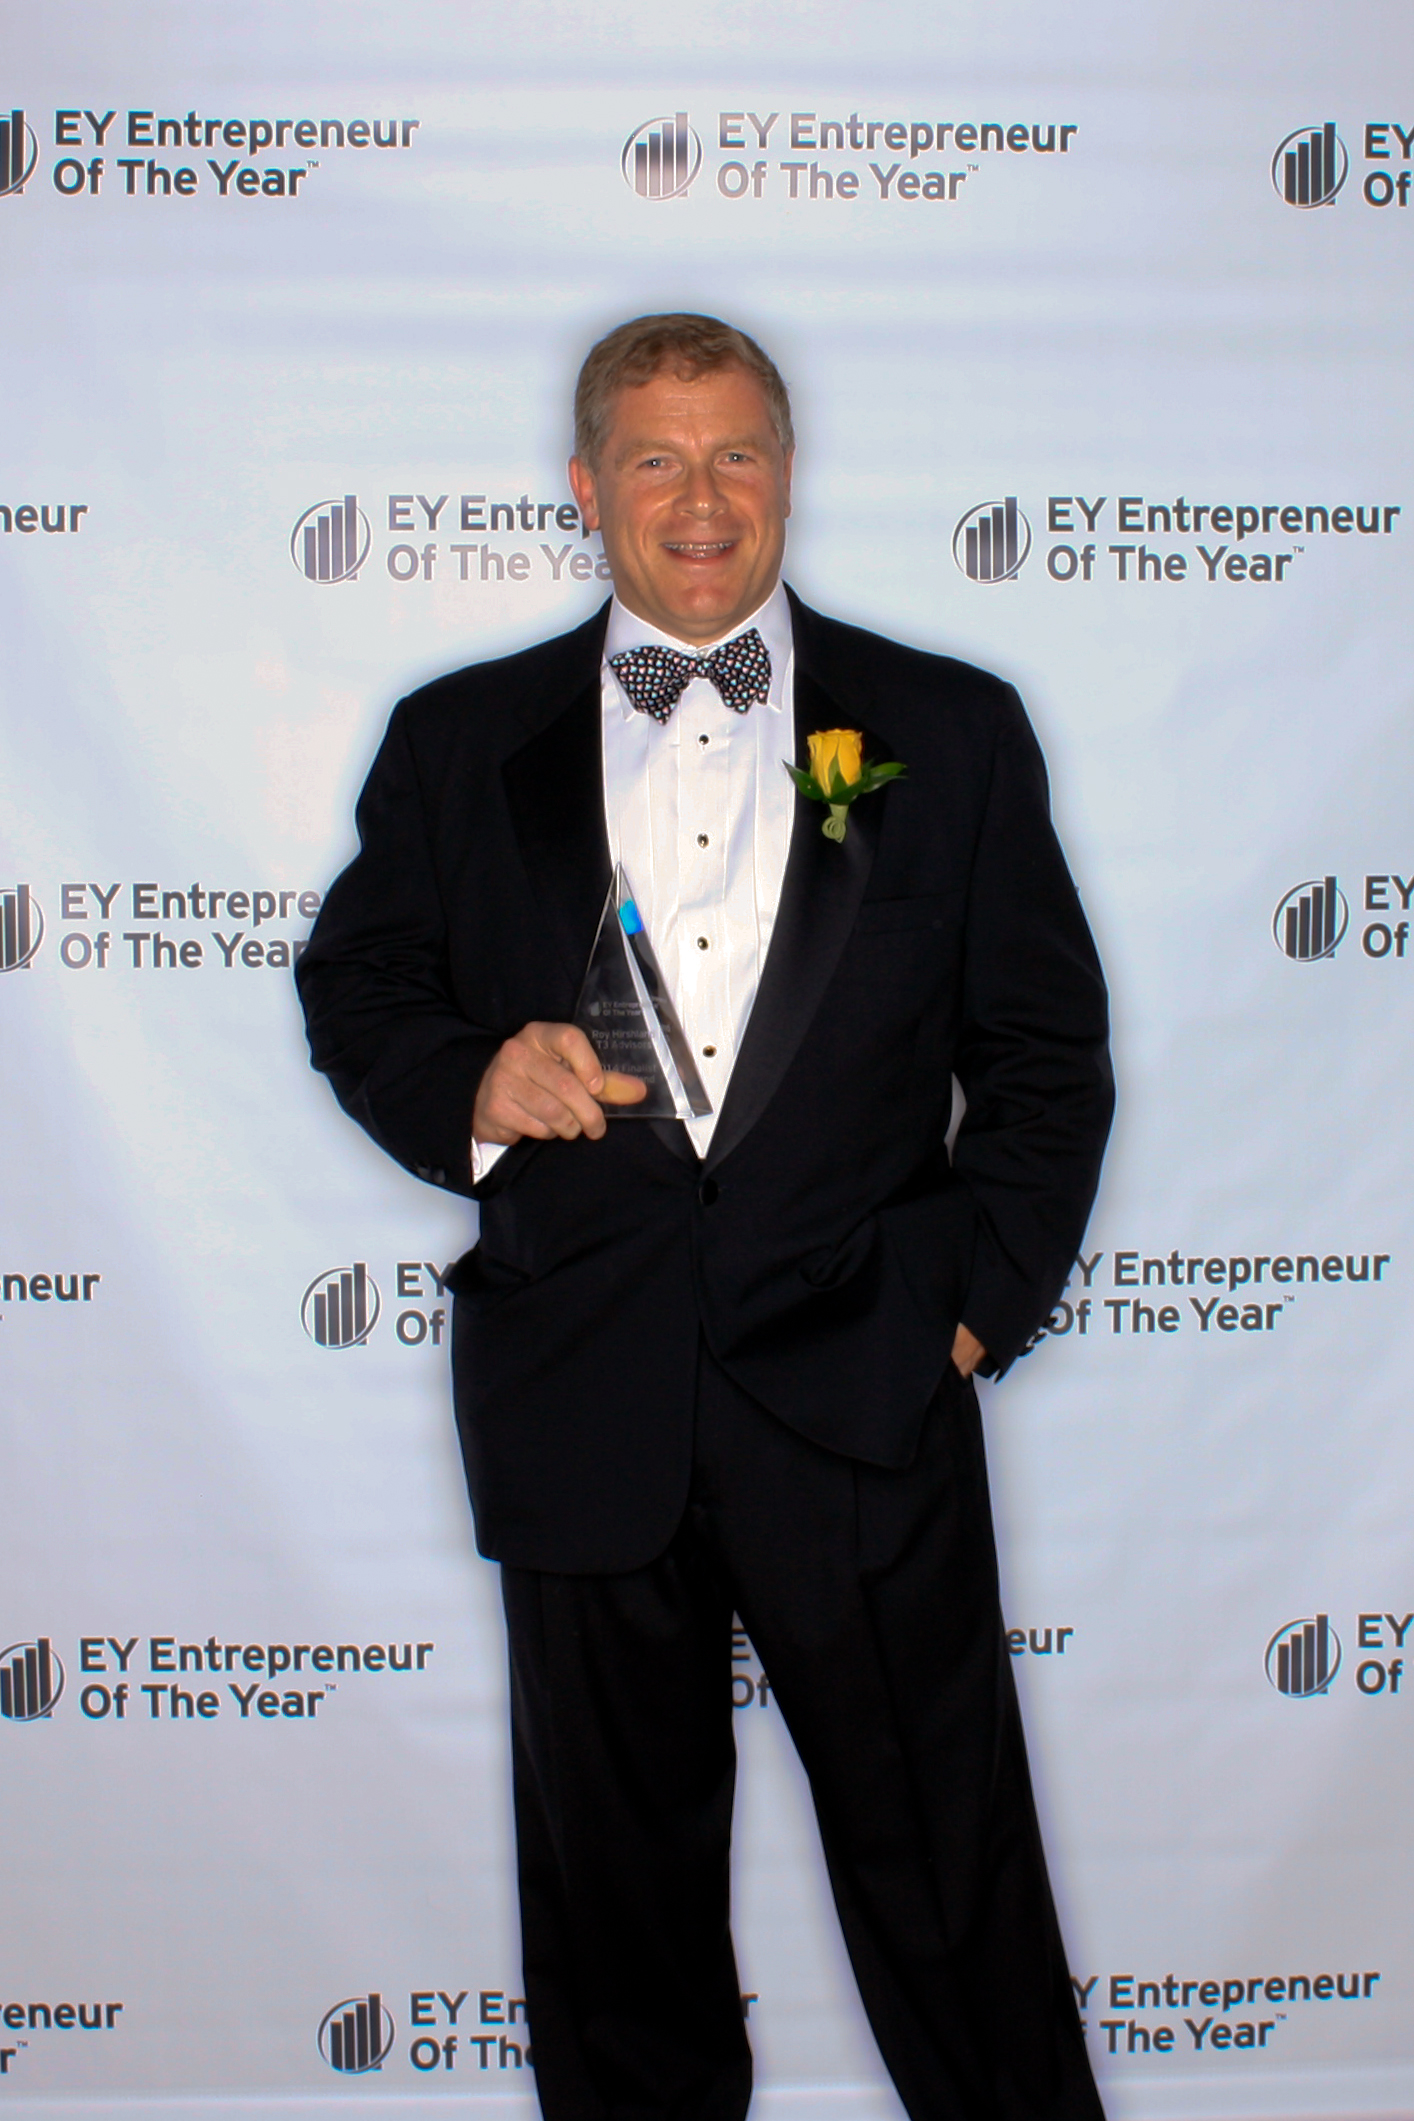 T3 Advisors' Roy Hirshland: EY Entrepreneur of the Year